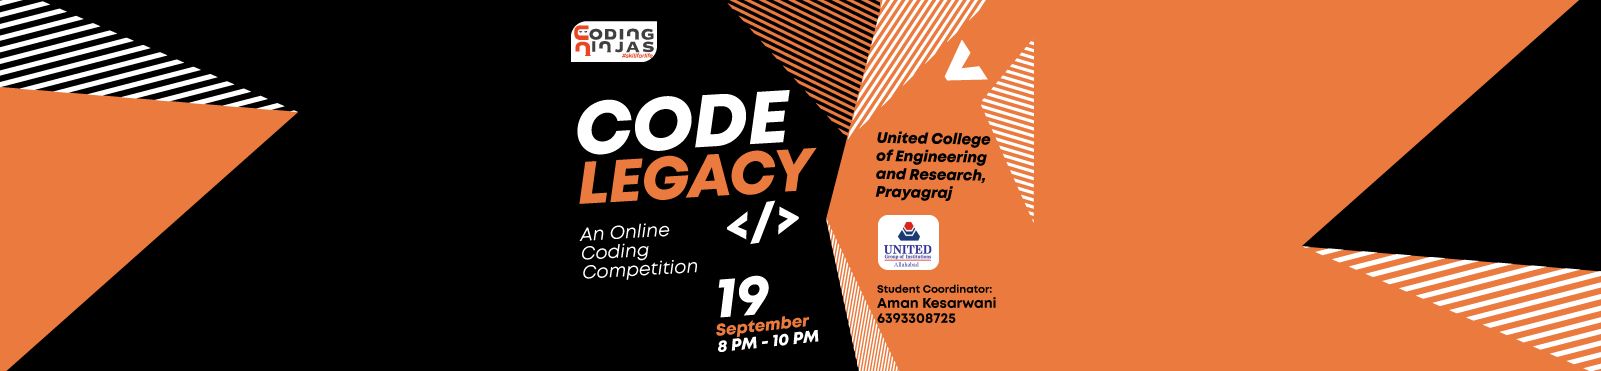 "Code Legacy at ""United College of Engineering and Research, Prayagraj"""